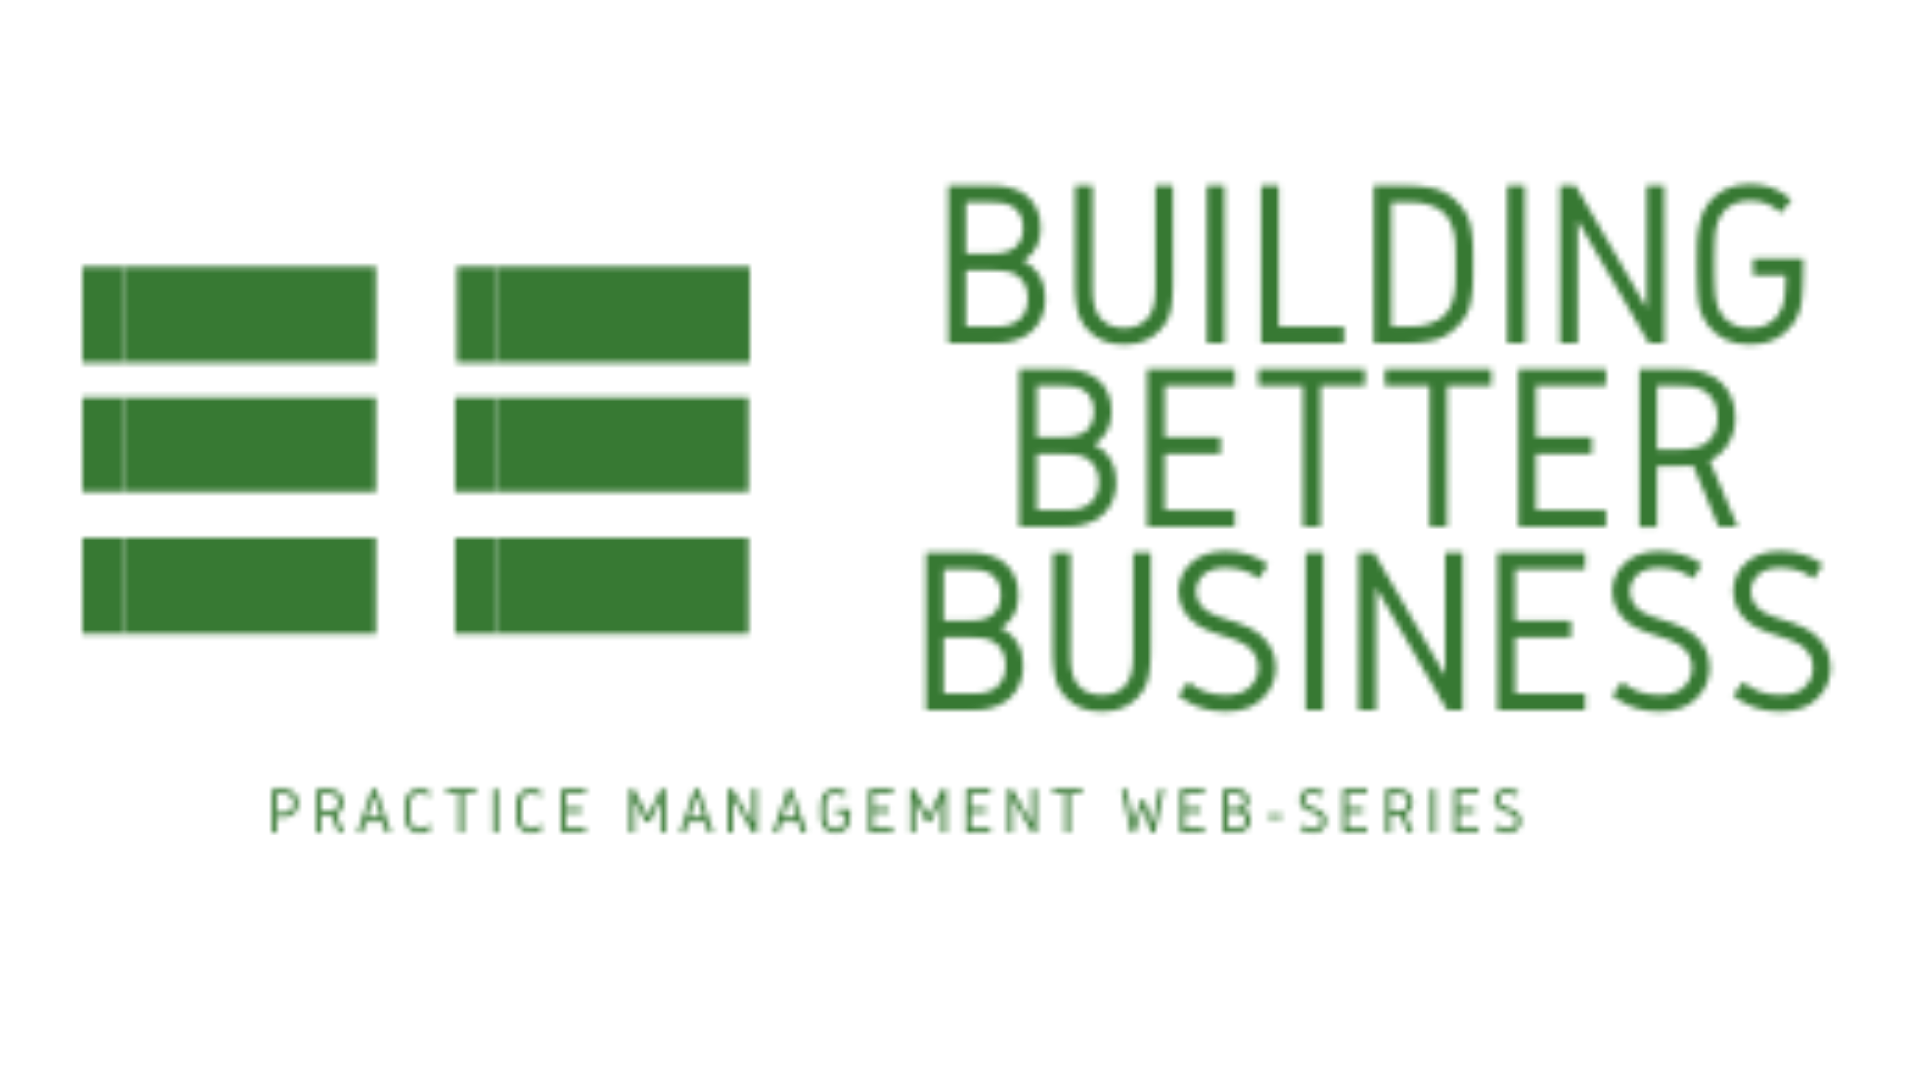 Logo - words say Building Better Business Practice Management Series with Trigram of 3 broken lines